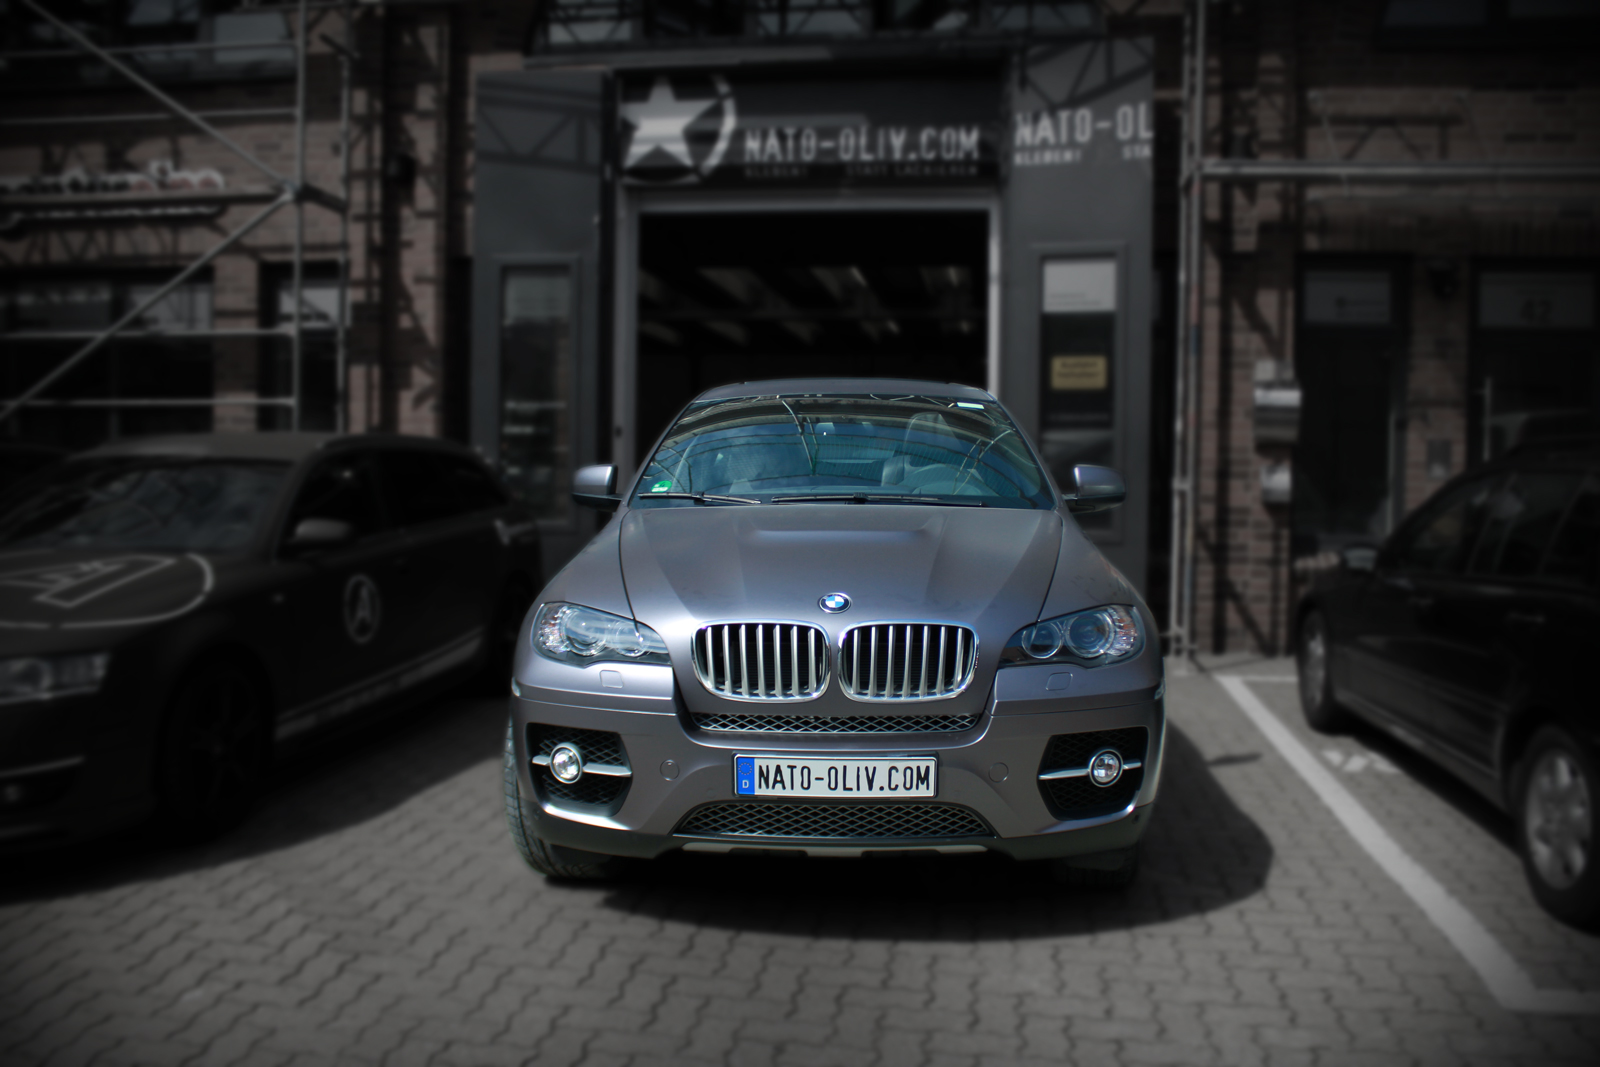 BMW_X6_Folierung_Anthrazit_Metallic_Matt_Titelbild02